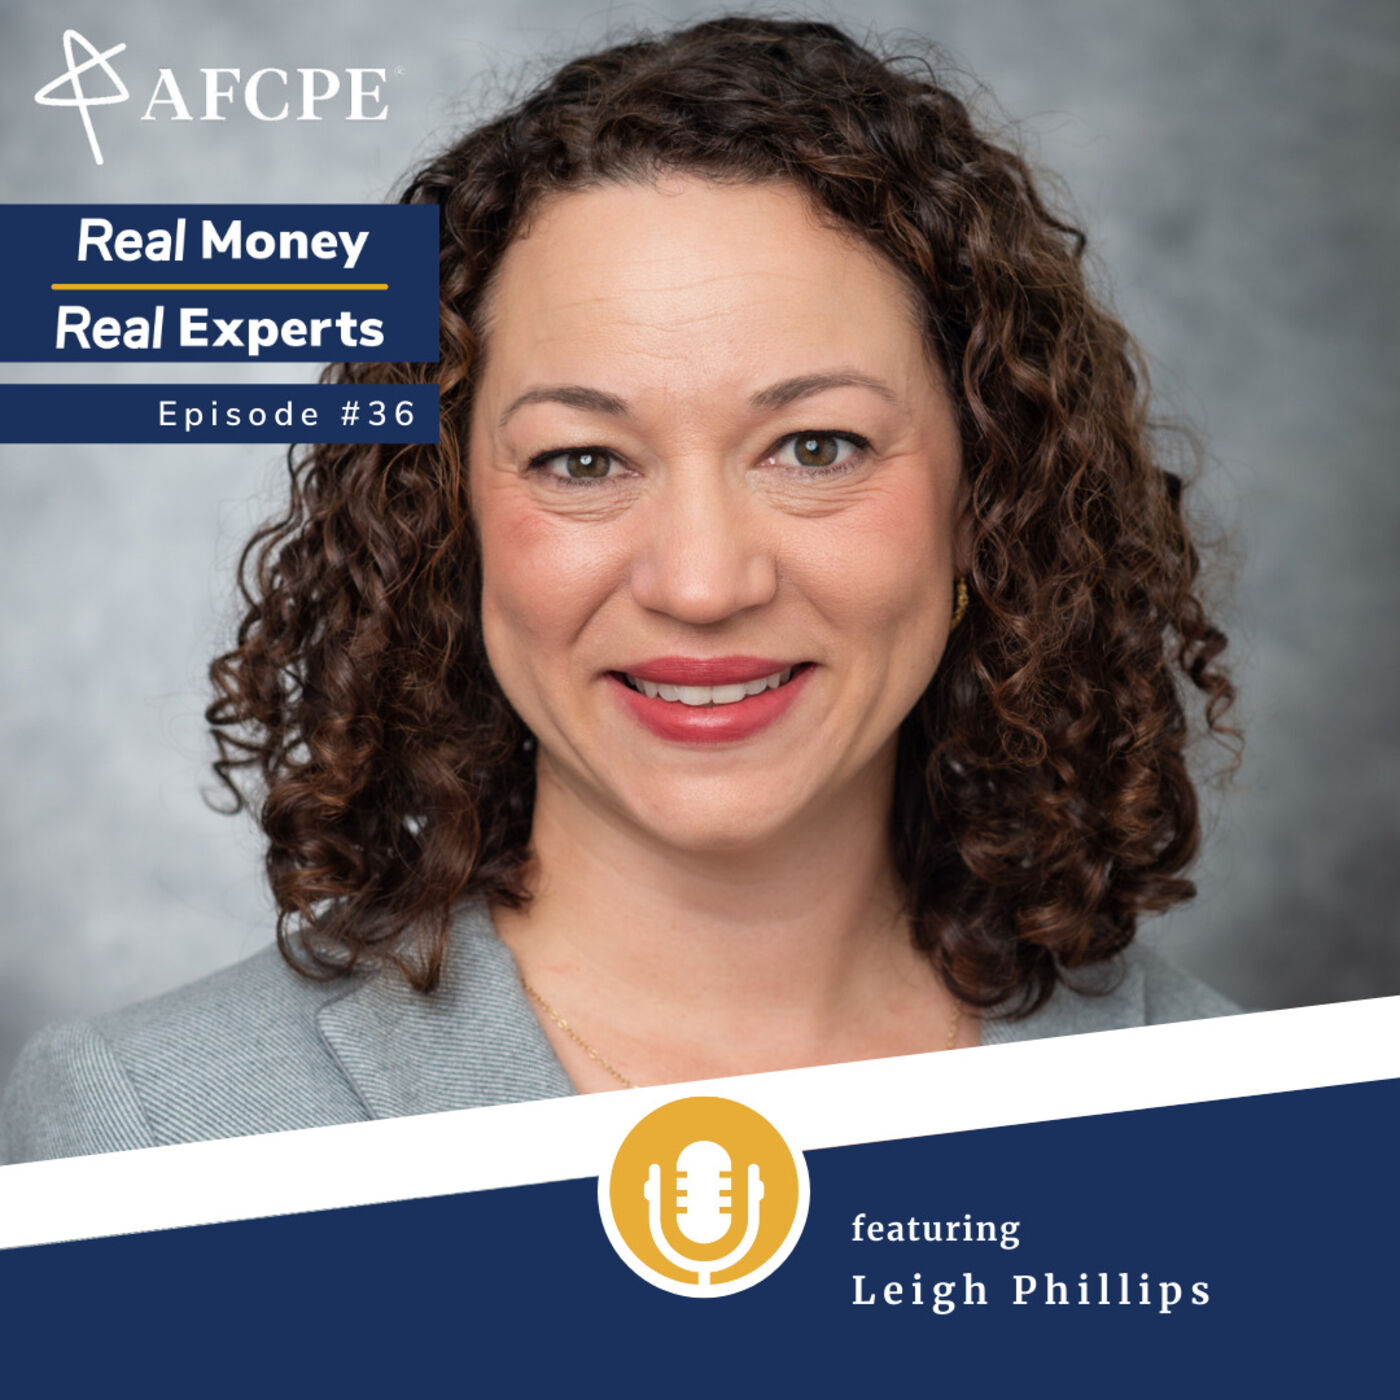 Under-banked and overlooked: Helping our vulnerable populations with Leigh Phillips